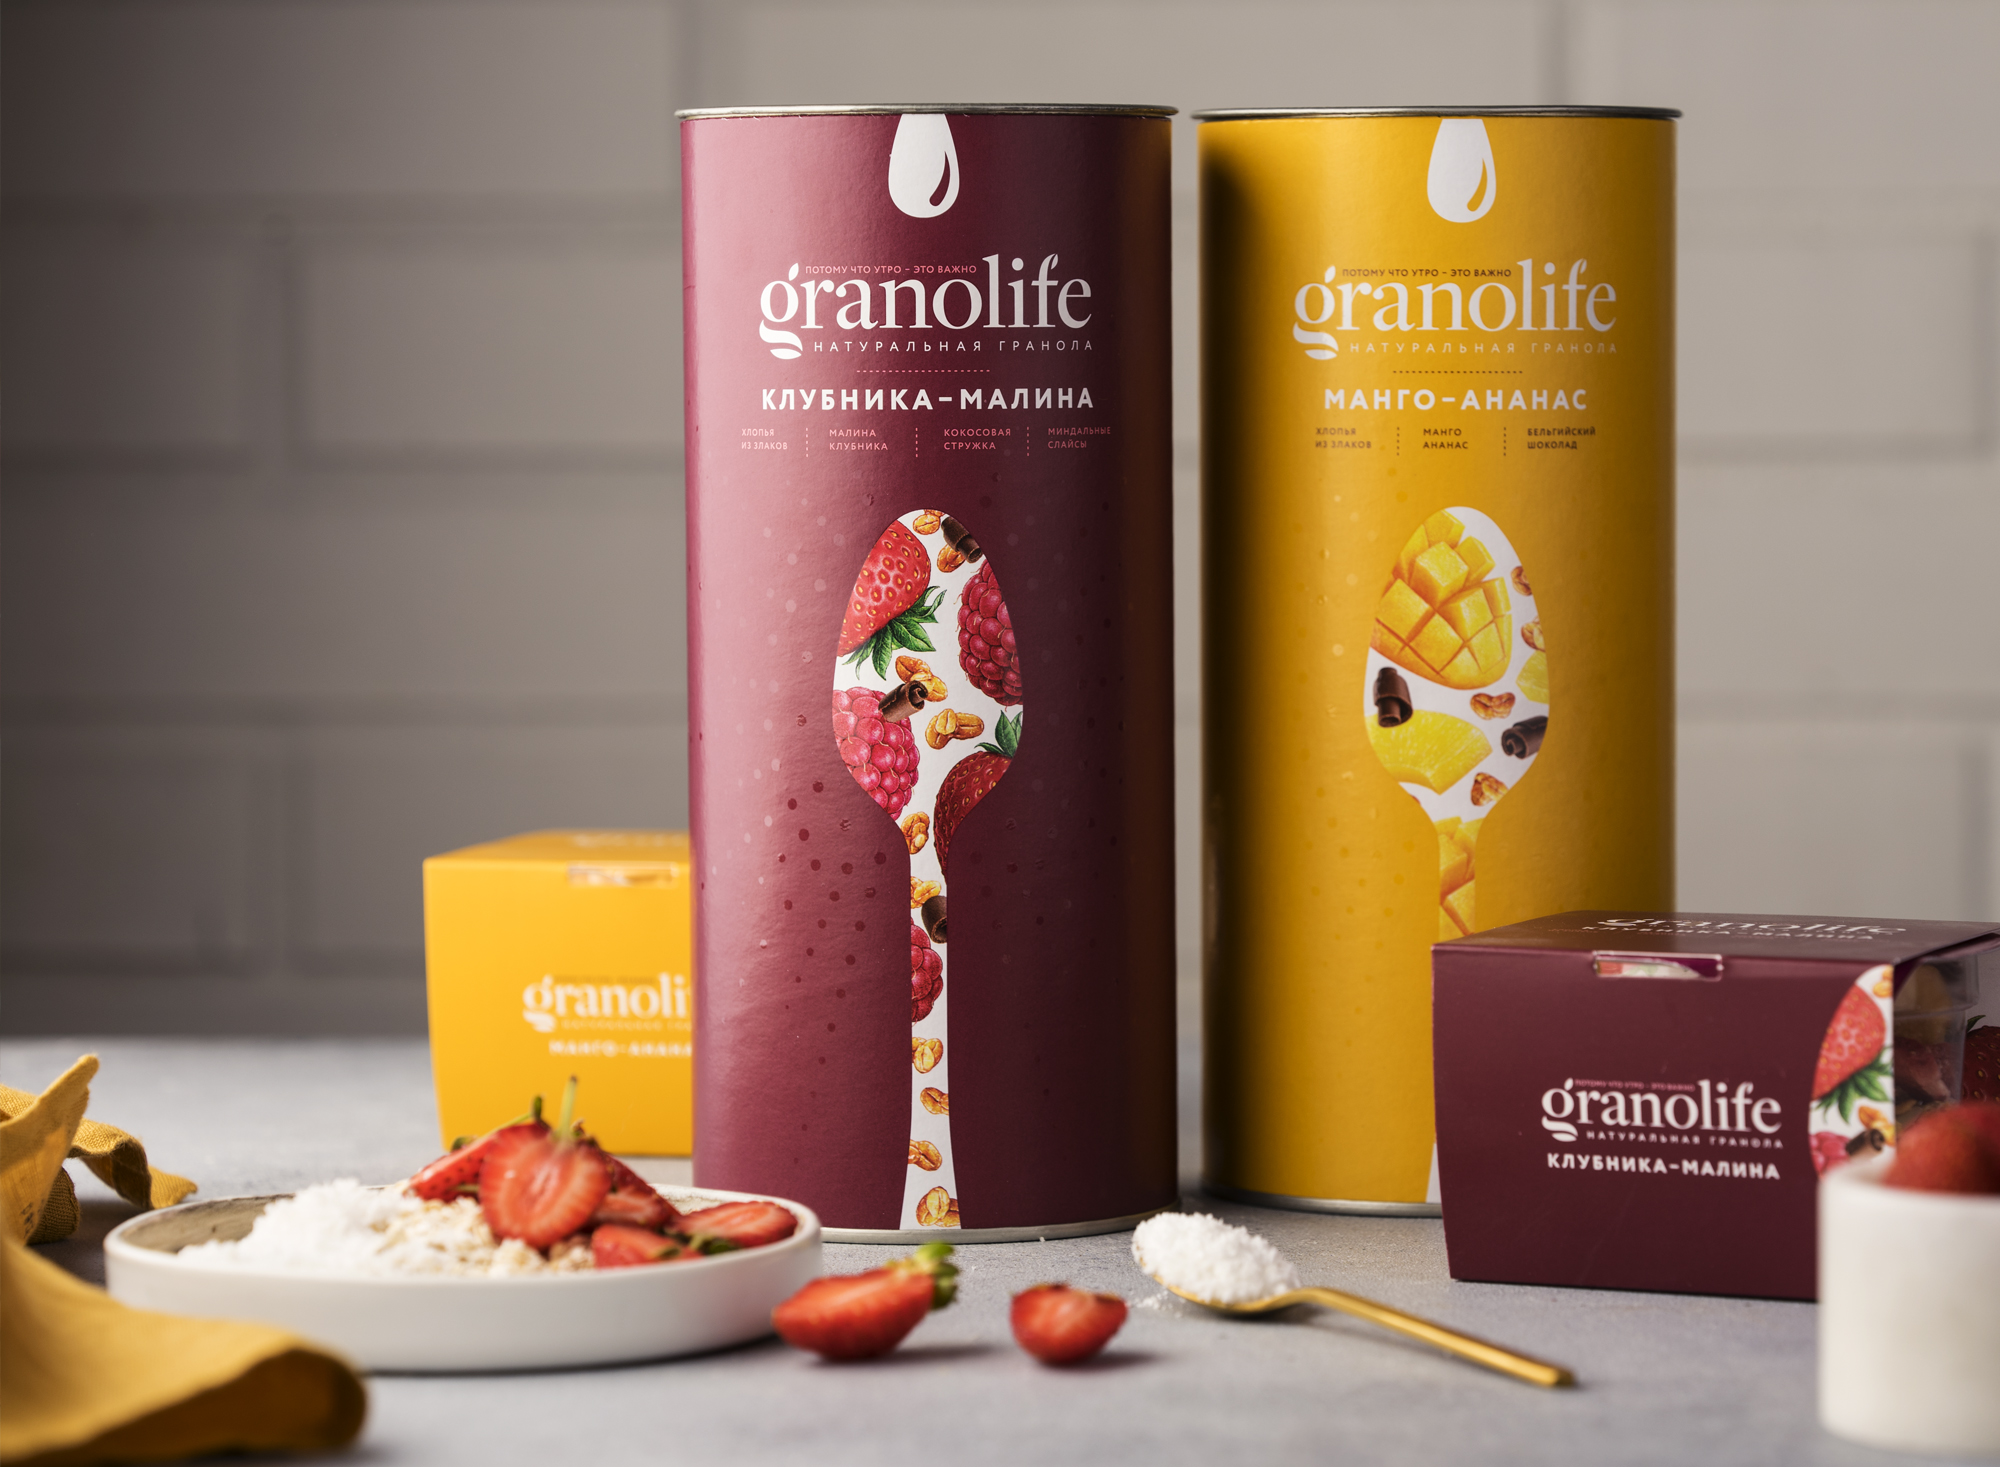 granola Granolife packaging